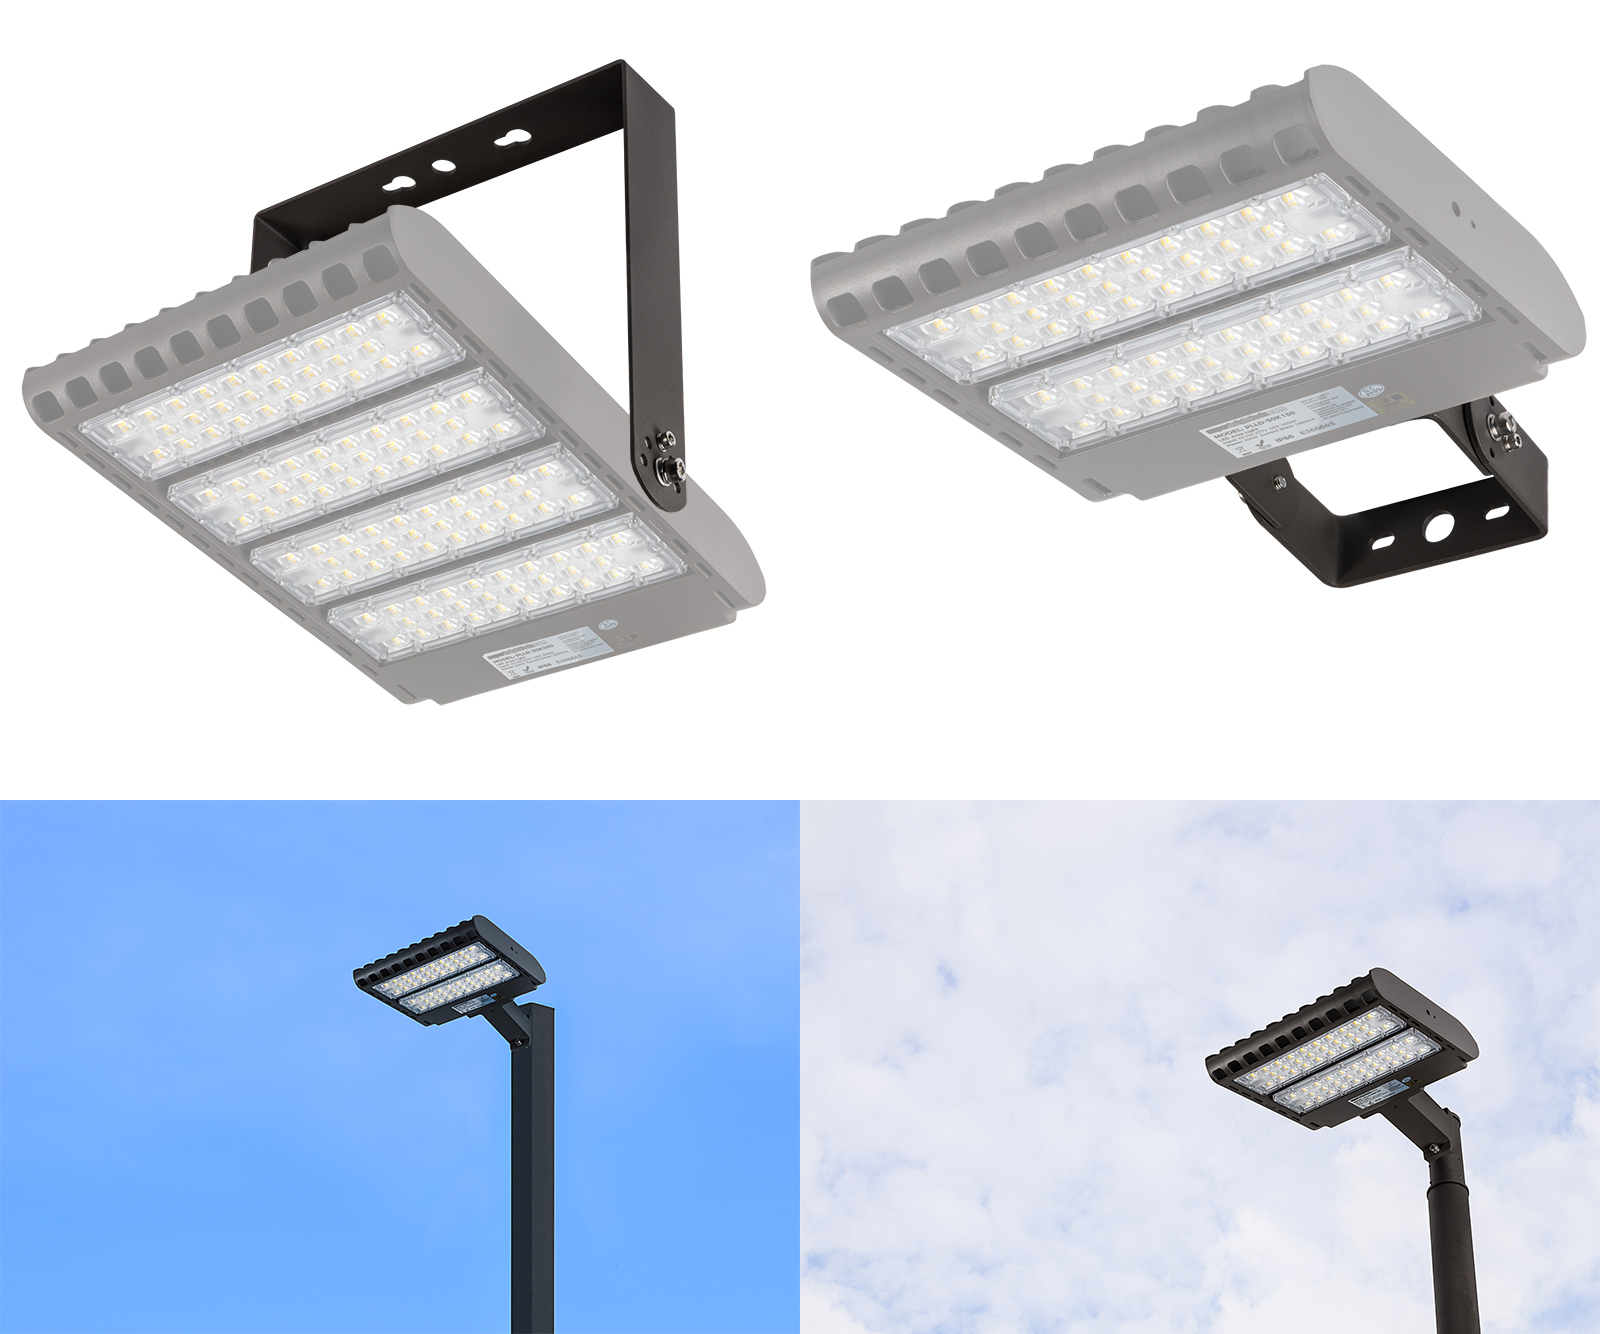 LED parking lot lights/area lights - bracket types